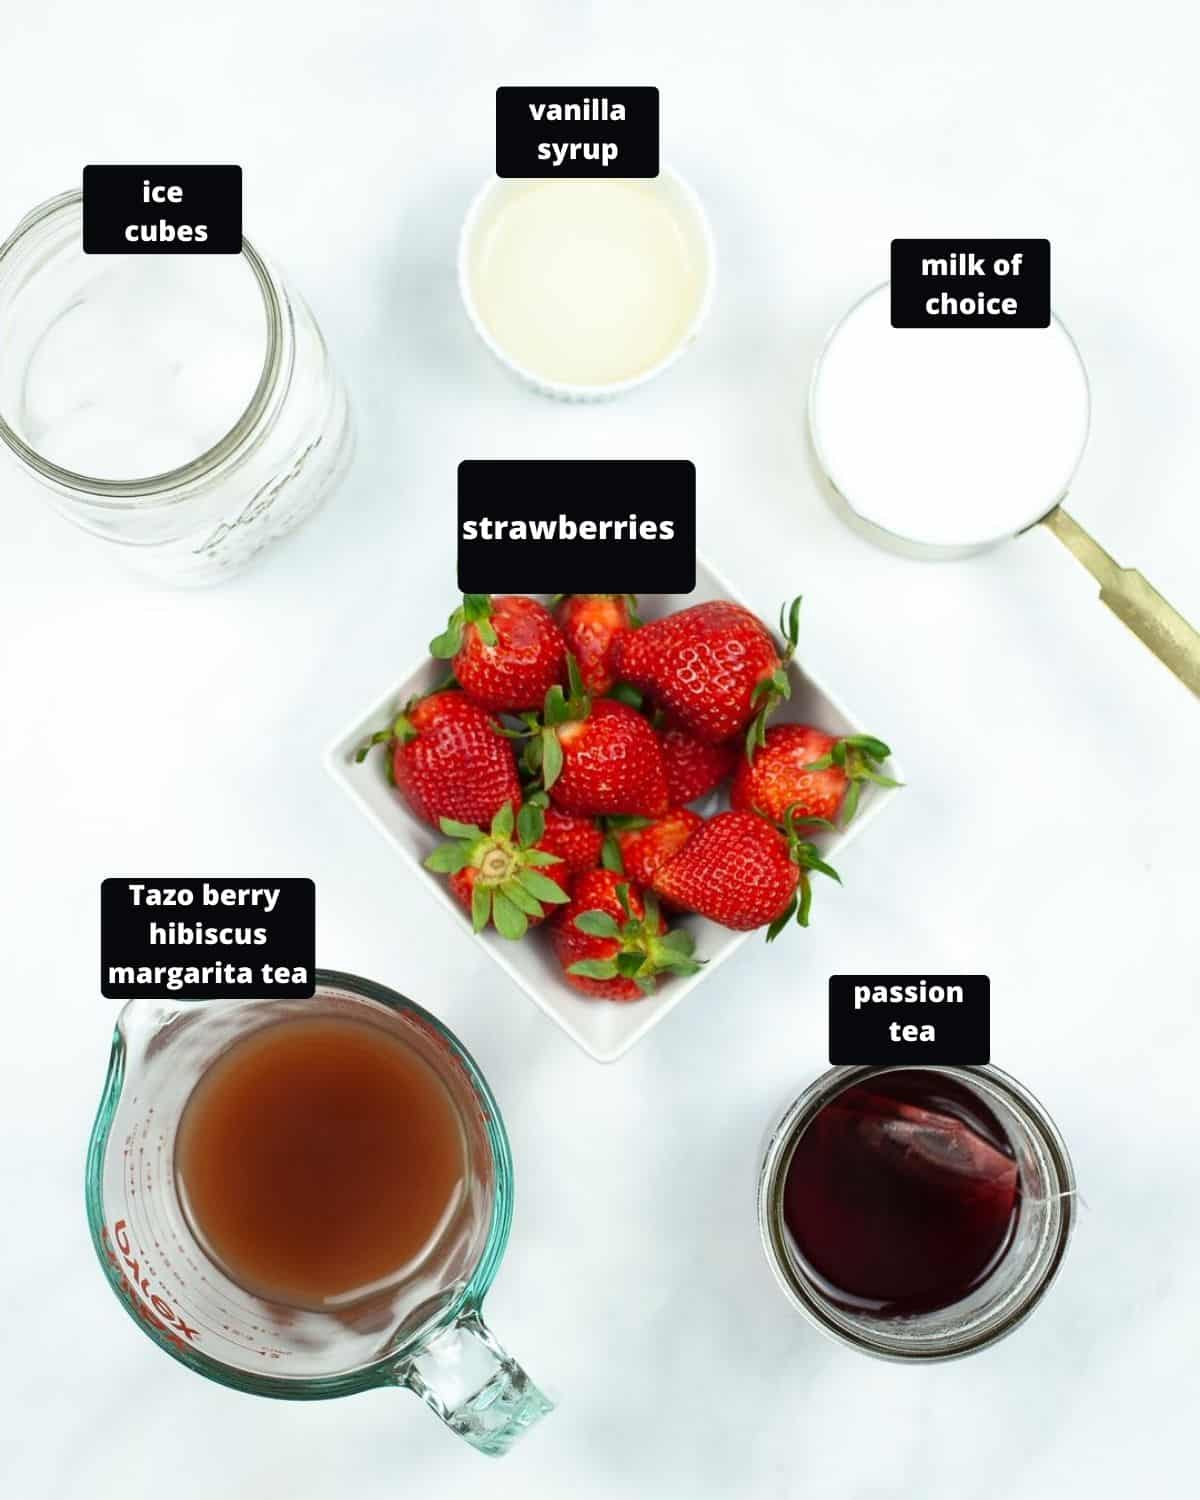 The ingredients to create a pink drink, copycat Starbucks drink on a white table.